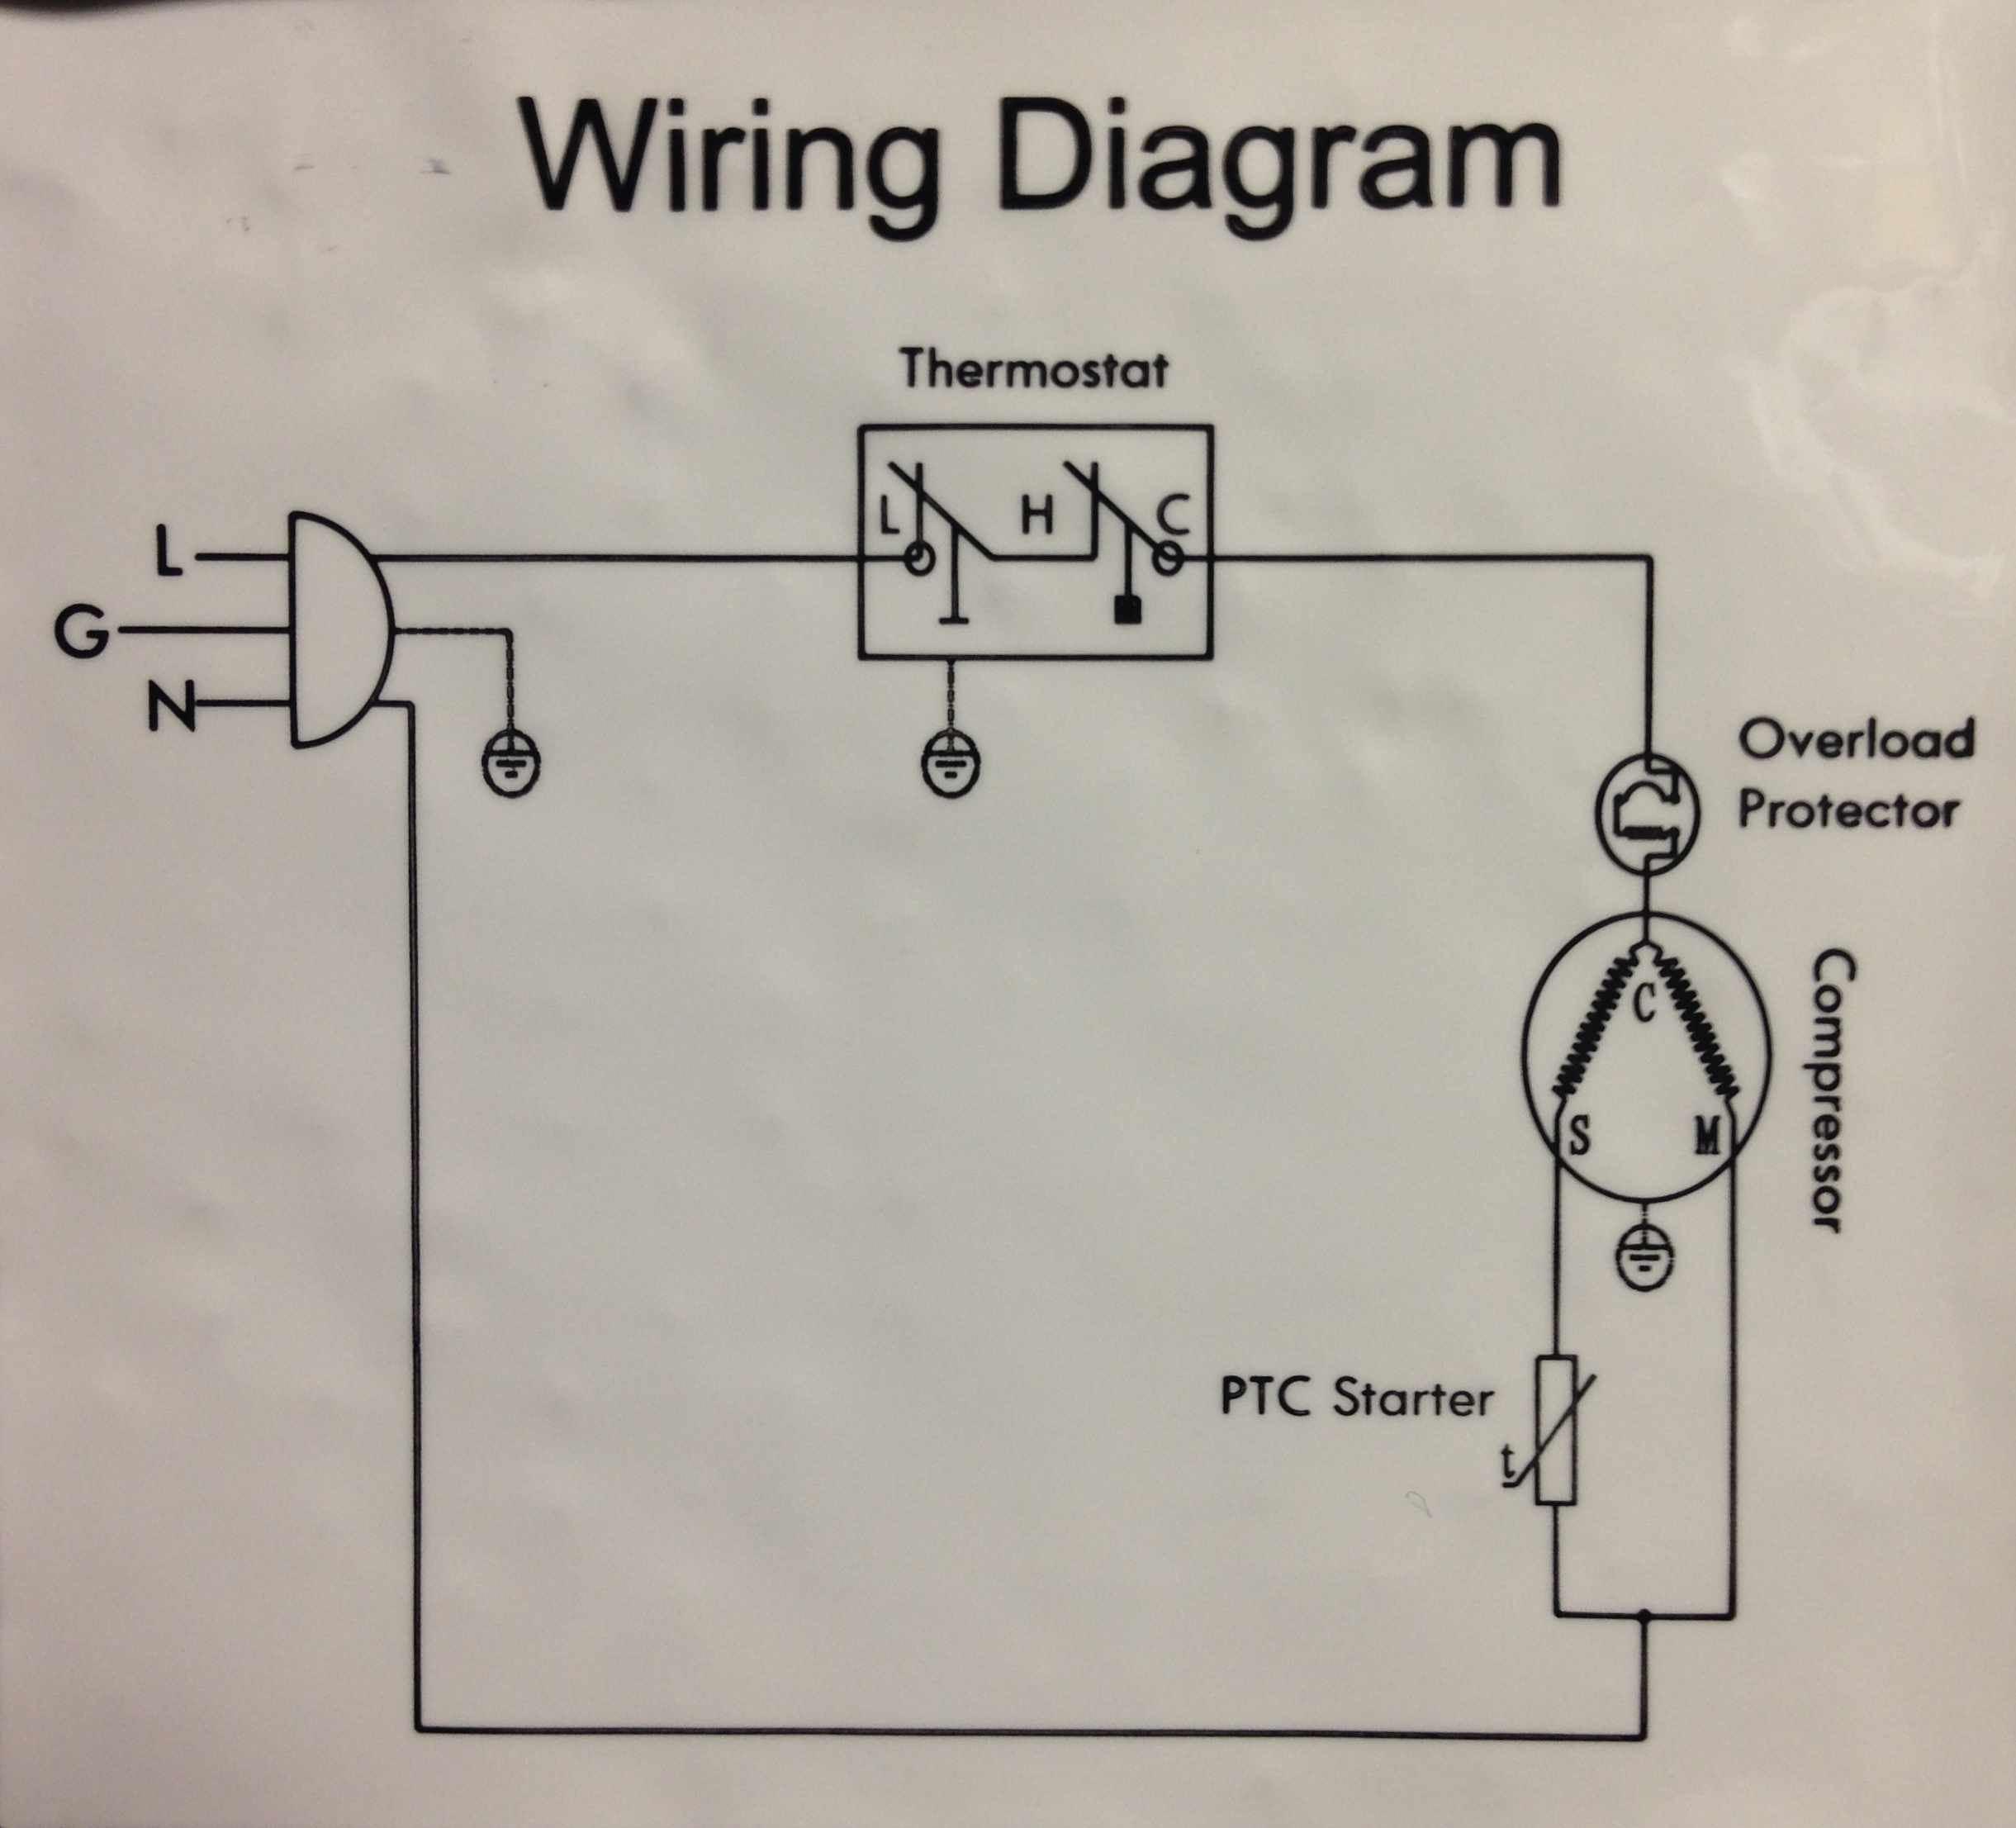 medium resolution of ptc wiring diagram data wiring diagram schematic ct wiring diagram 20 ptc wiring diagram pictures and